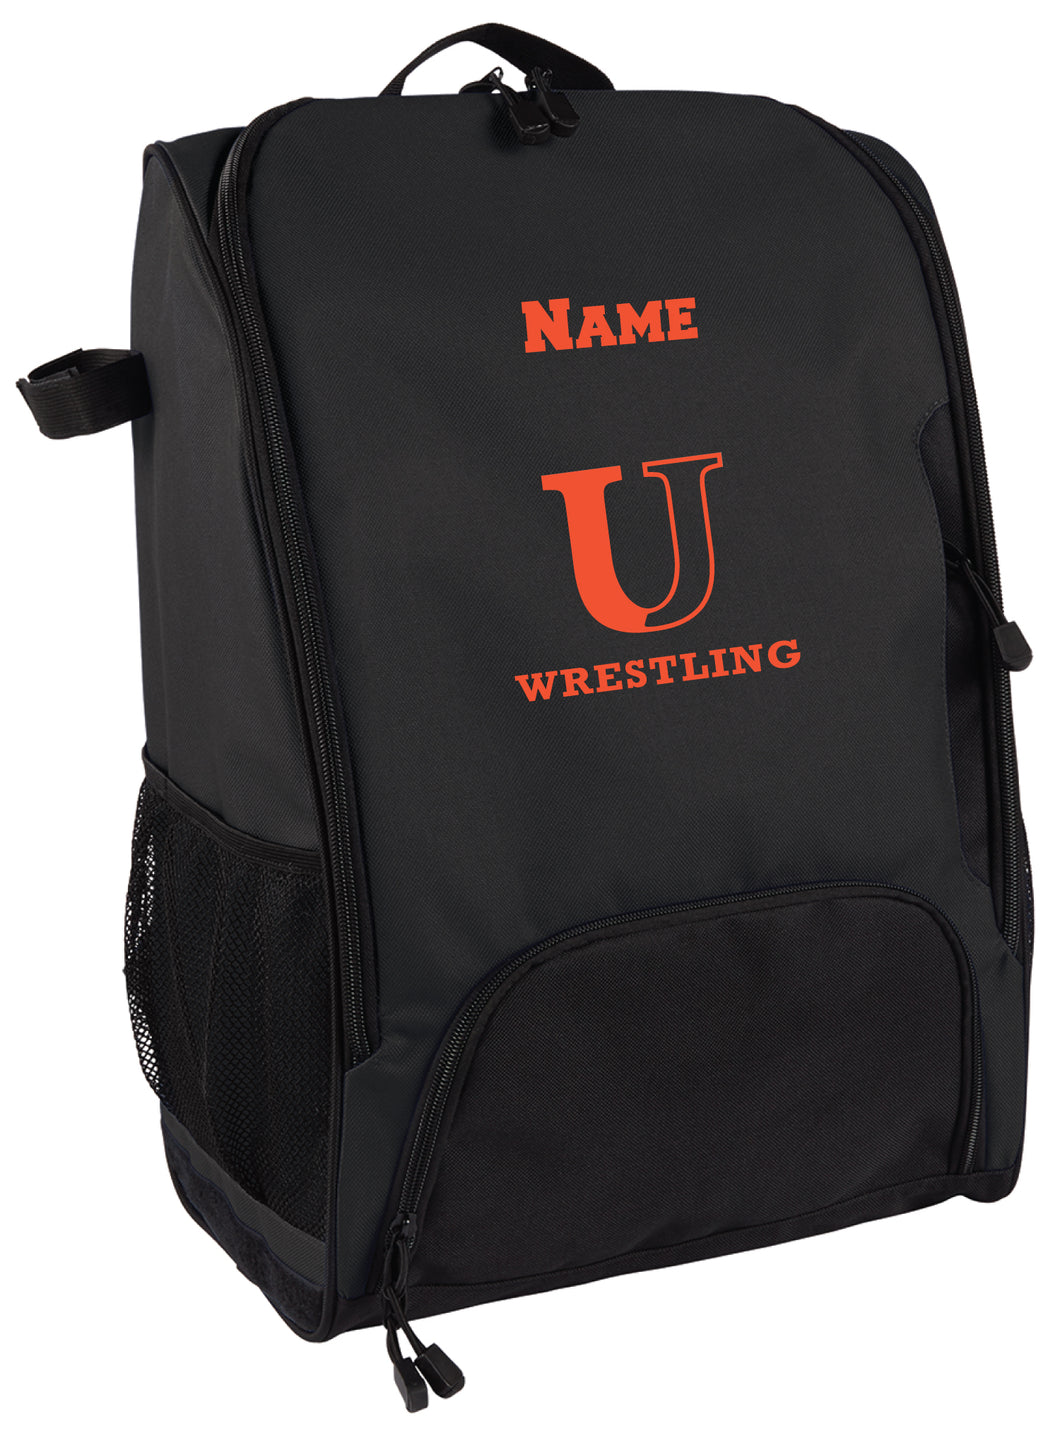 University of Jamestown Wrestling Backpack - 5KounT